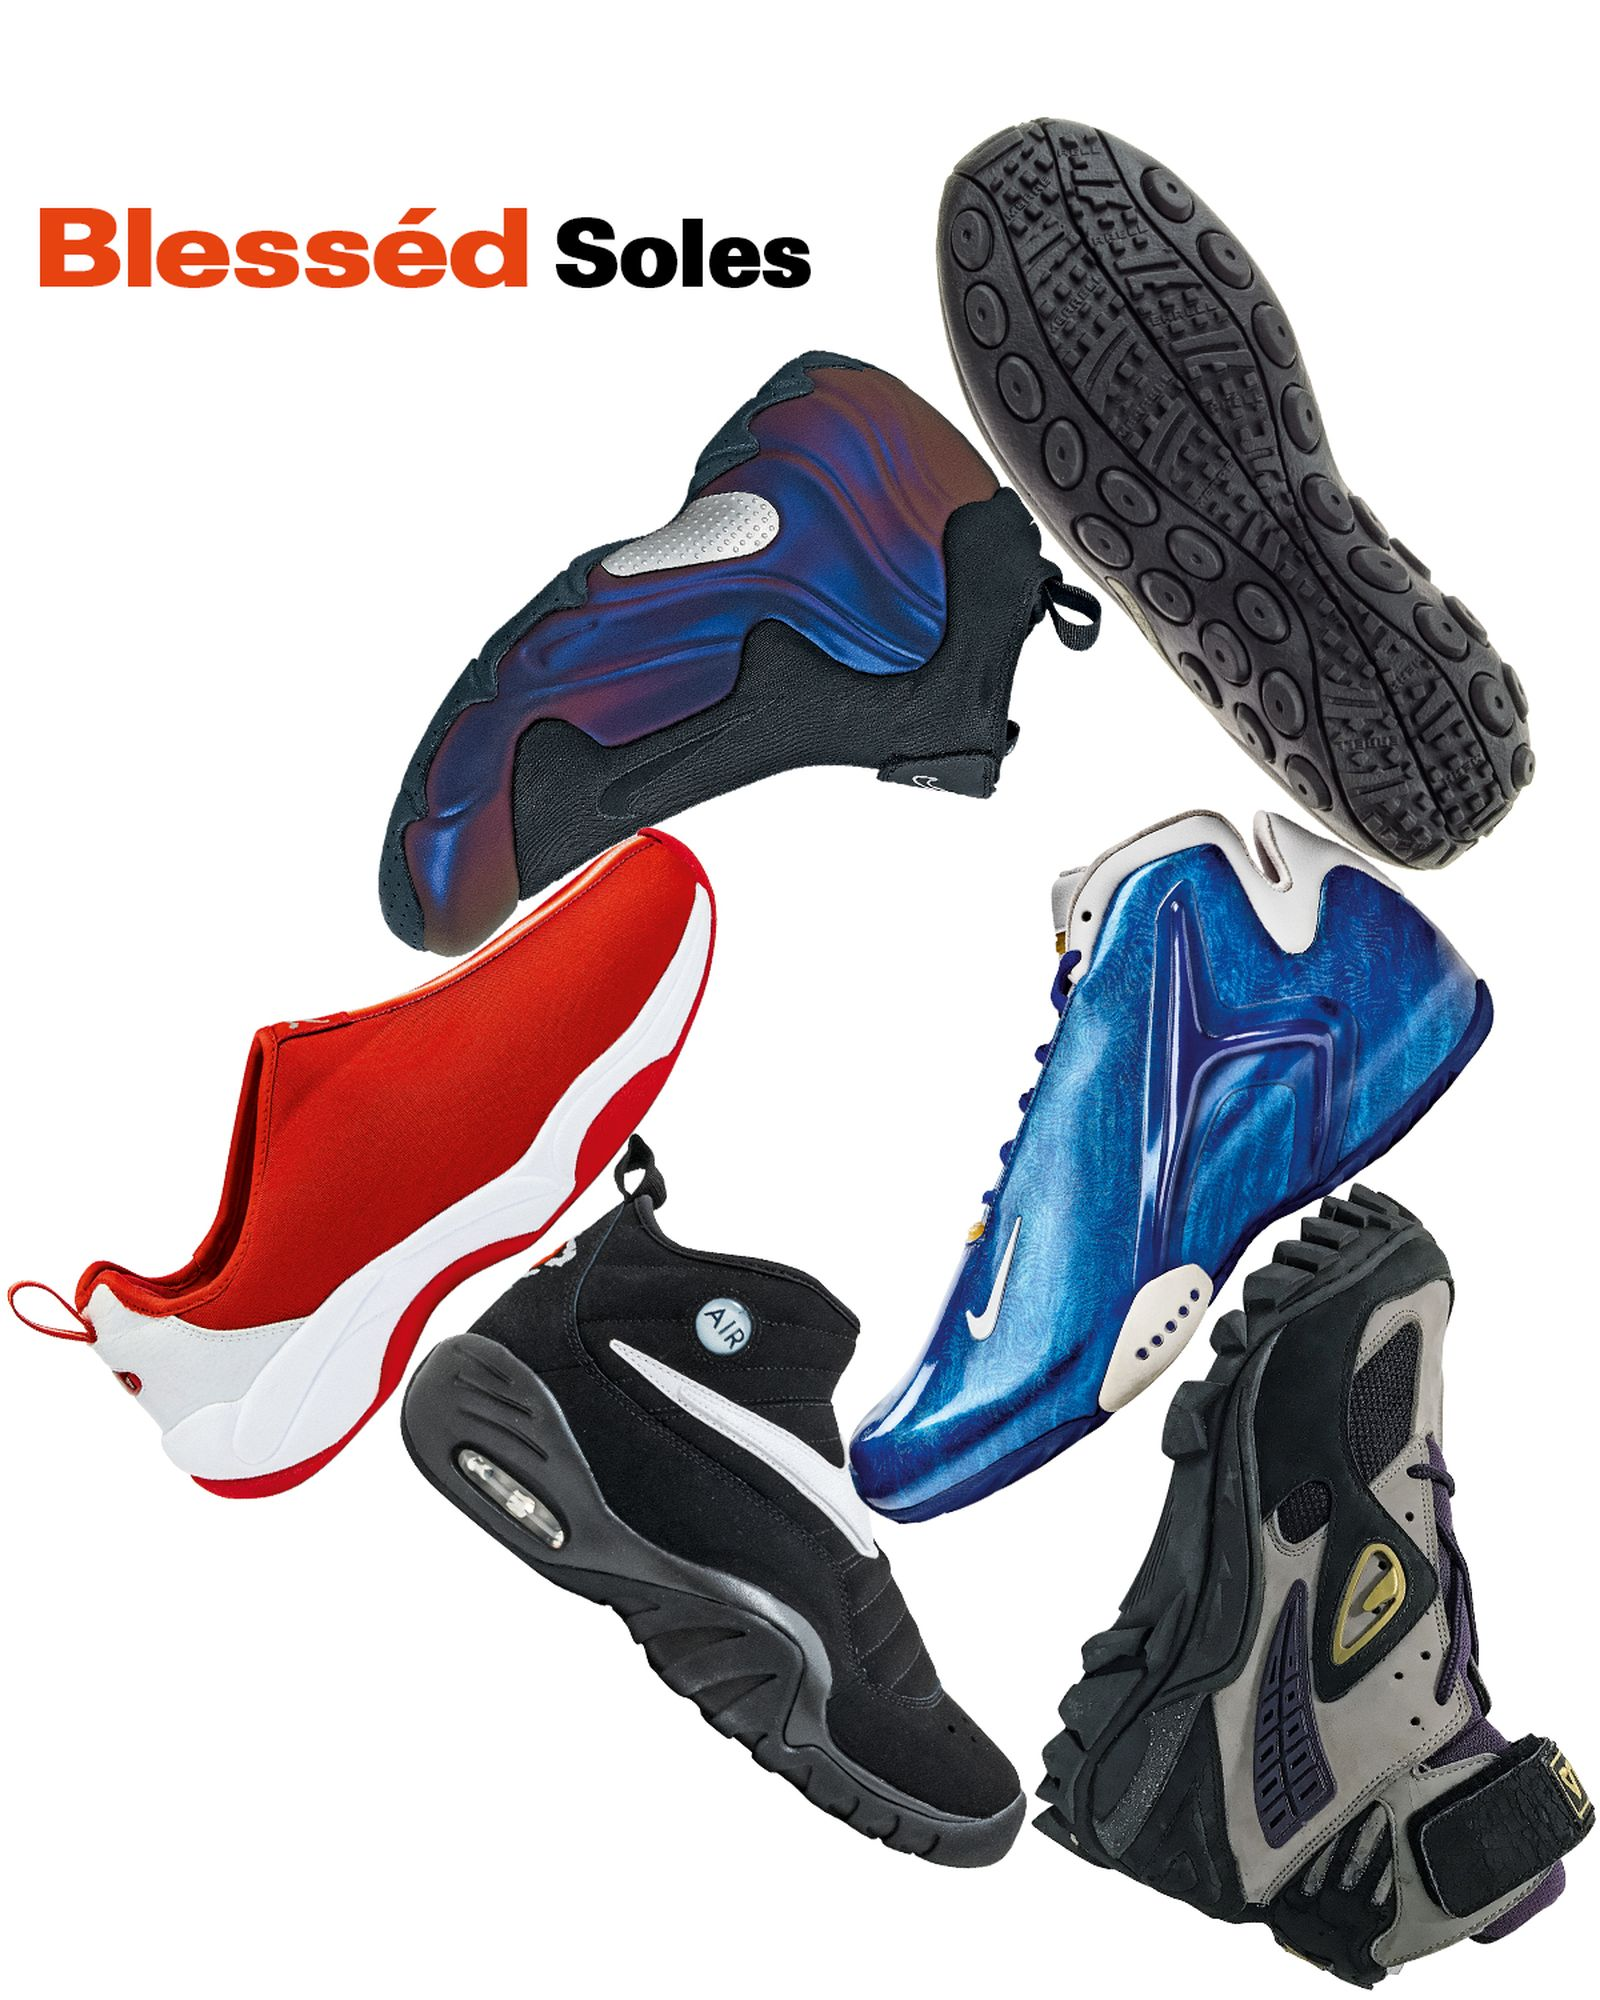 ED_WEB_Sneakers_Blessed_Soles_1500